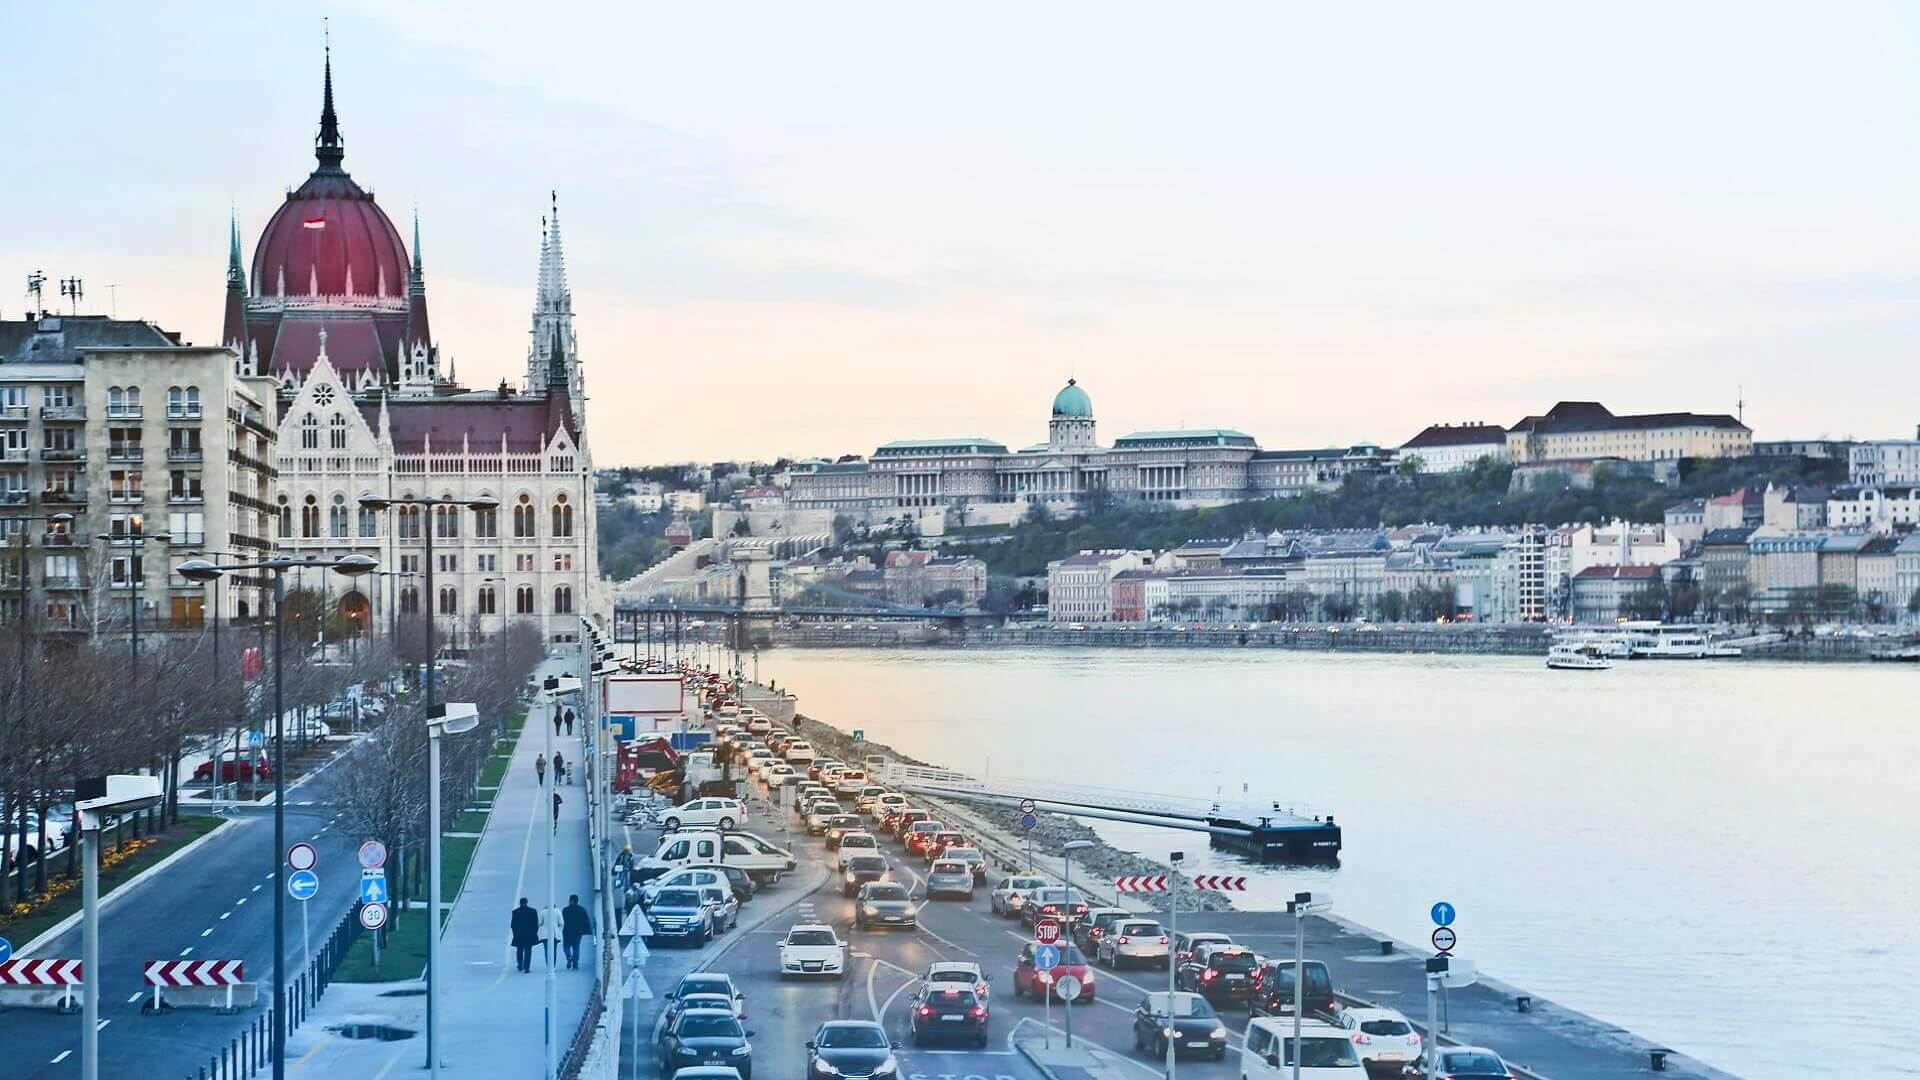 Budapest is one of the best destinations in central Europe